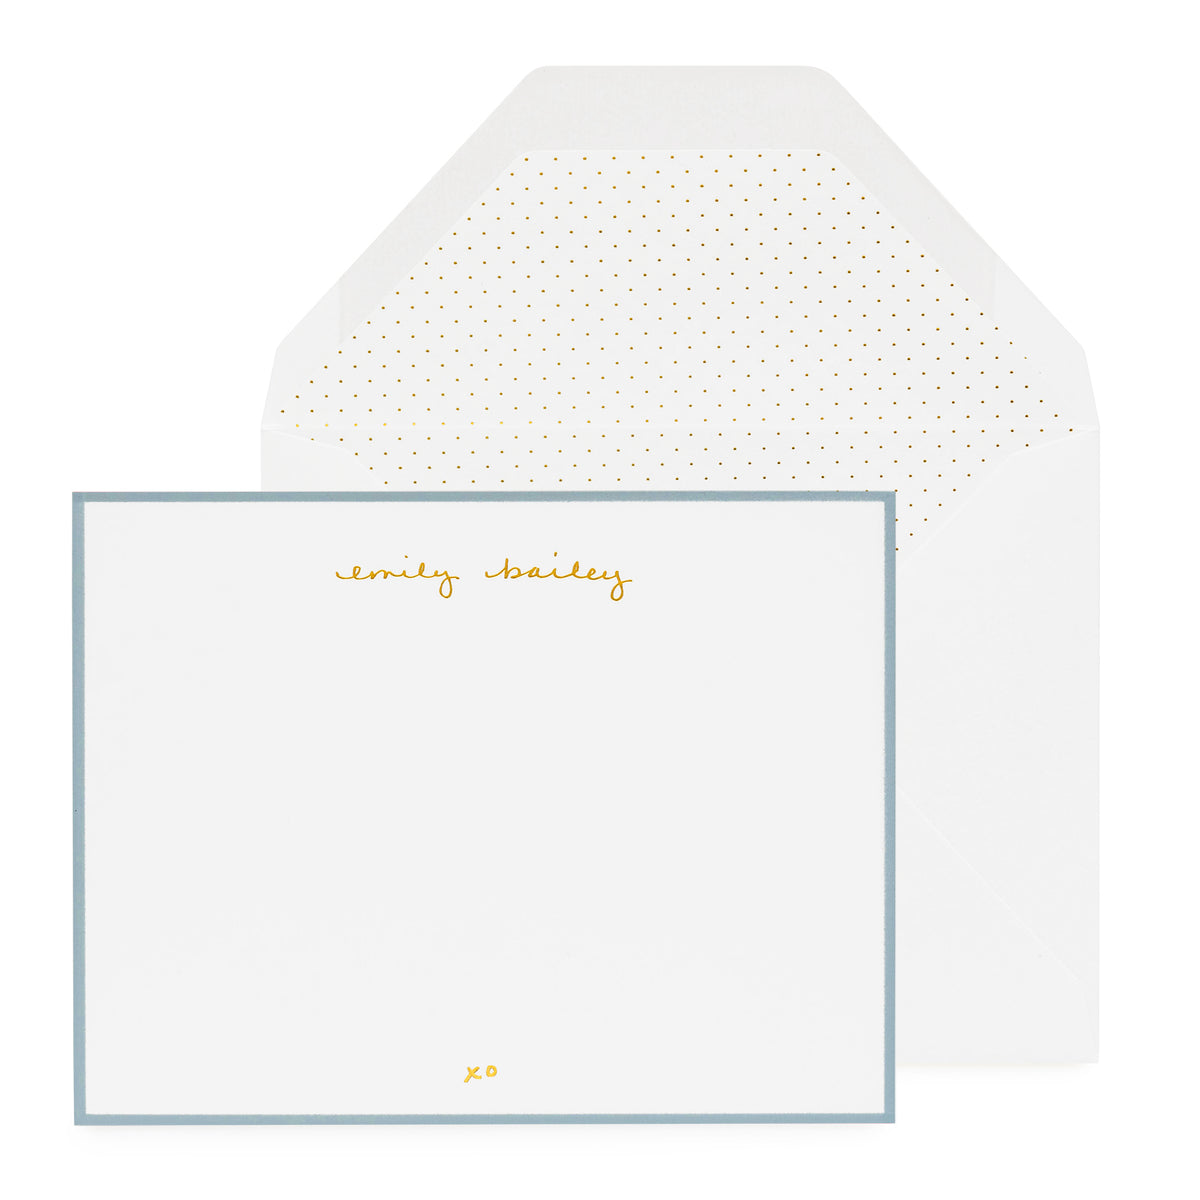 Personalized stationery with gold foil name and blue border